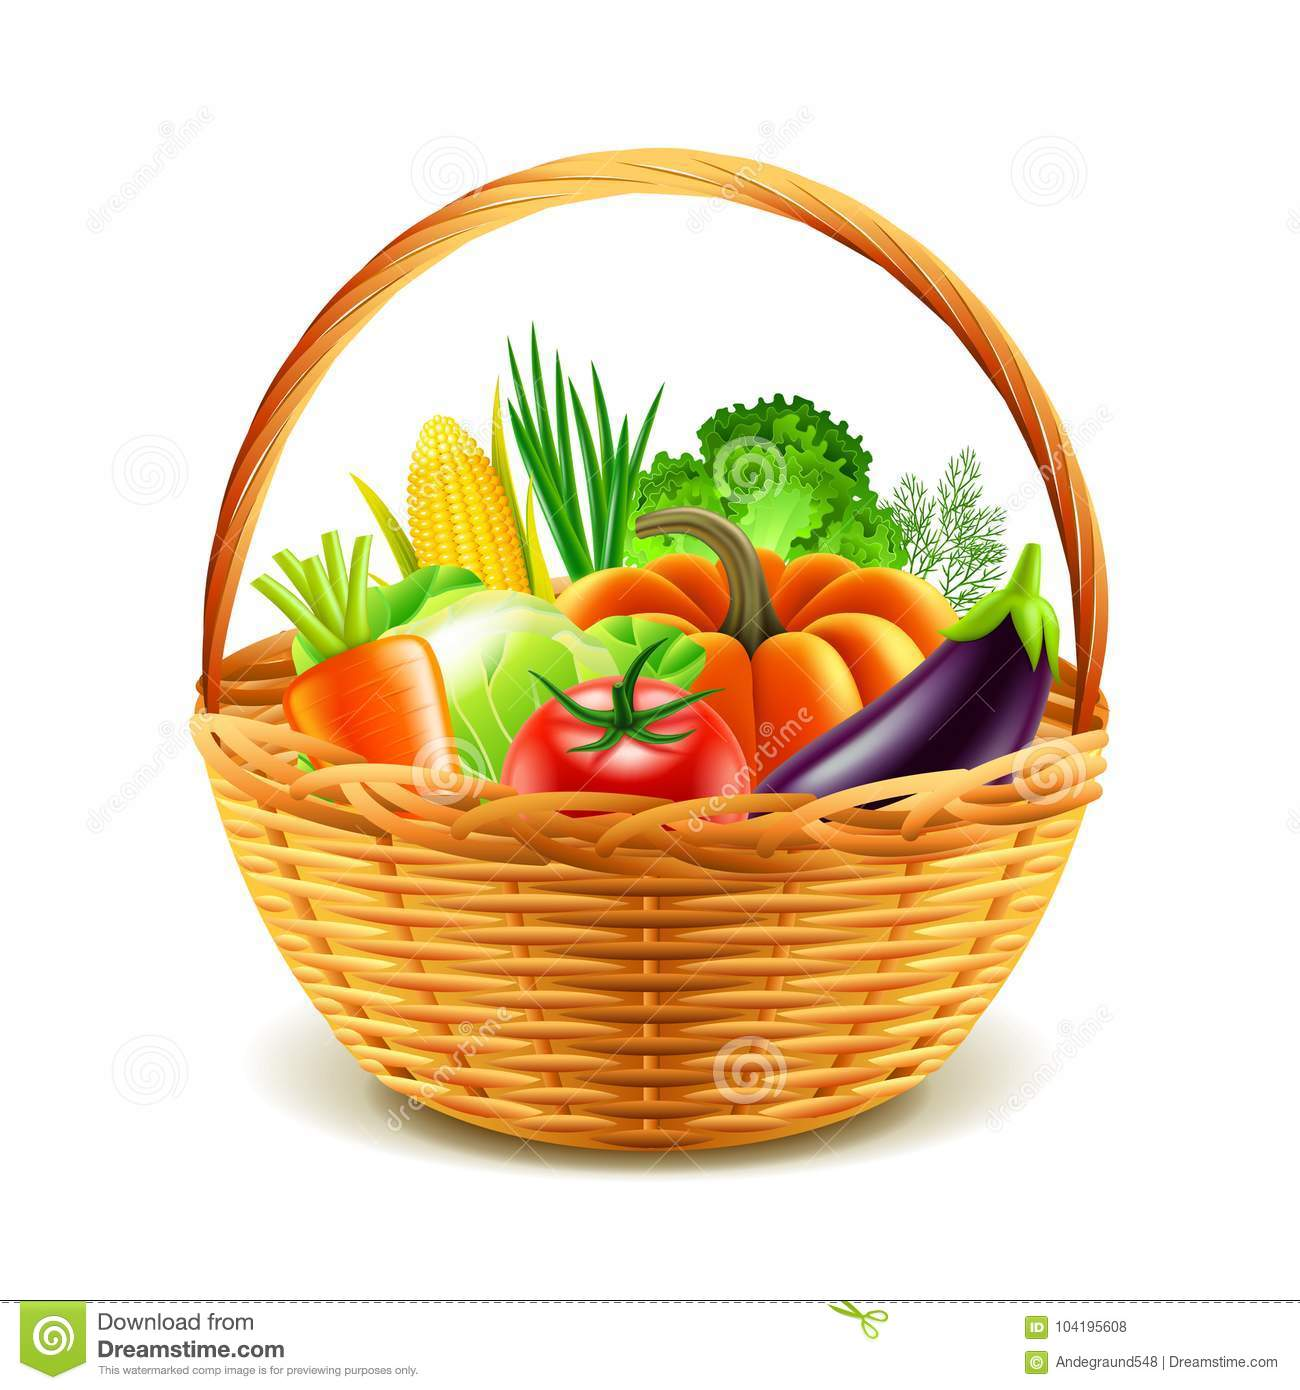 Vegetables in wicker basket isolated vector